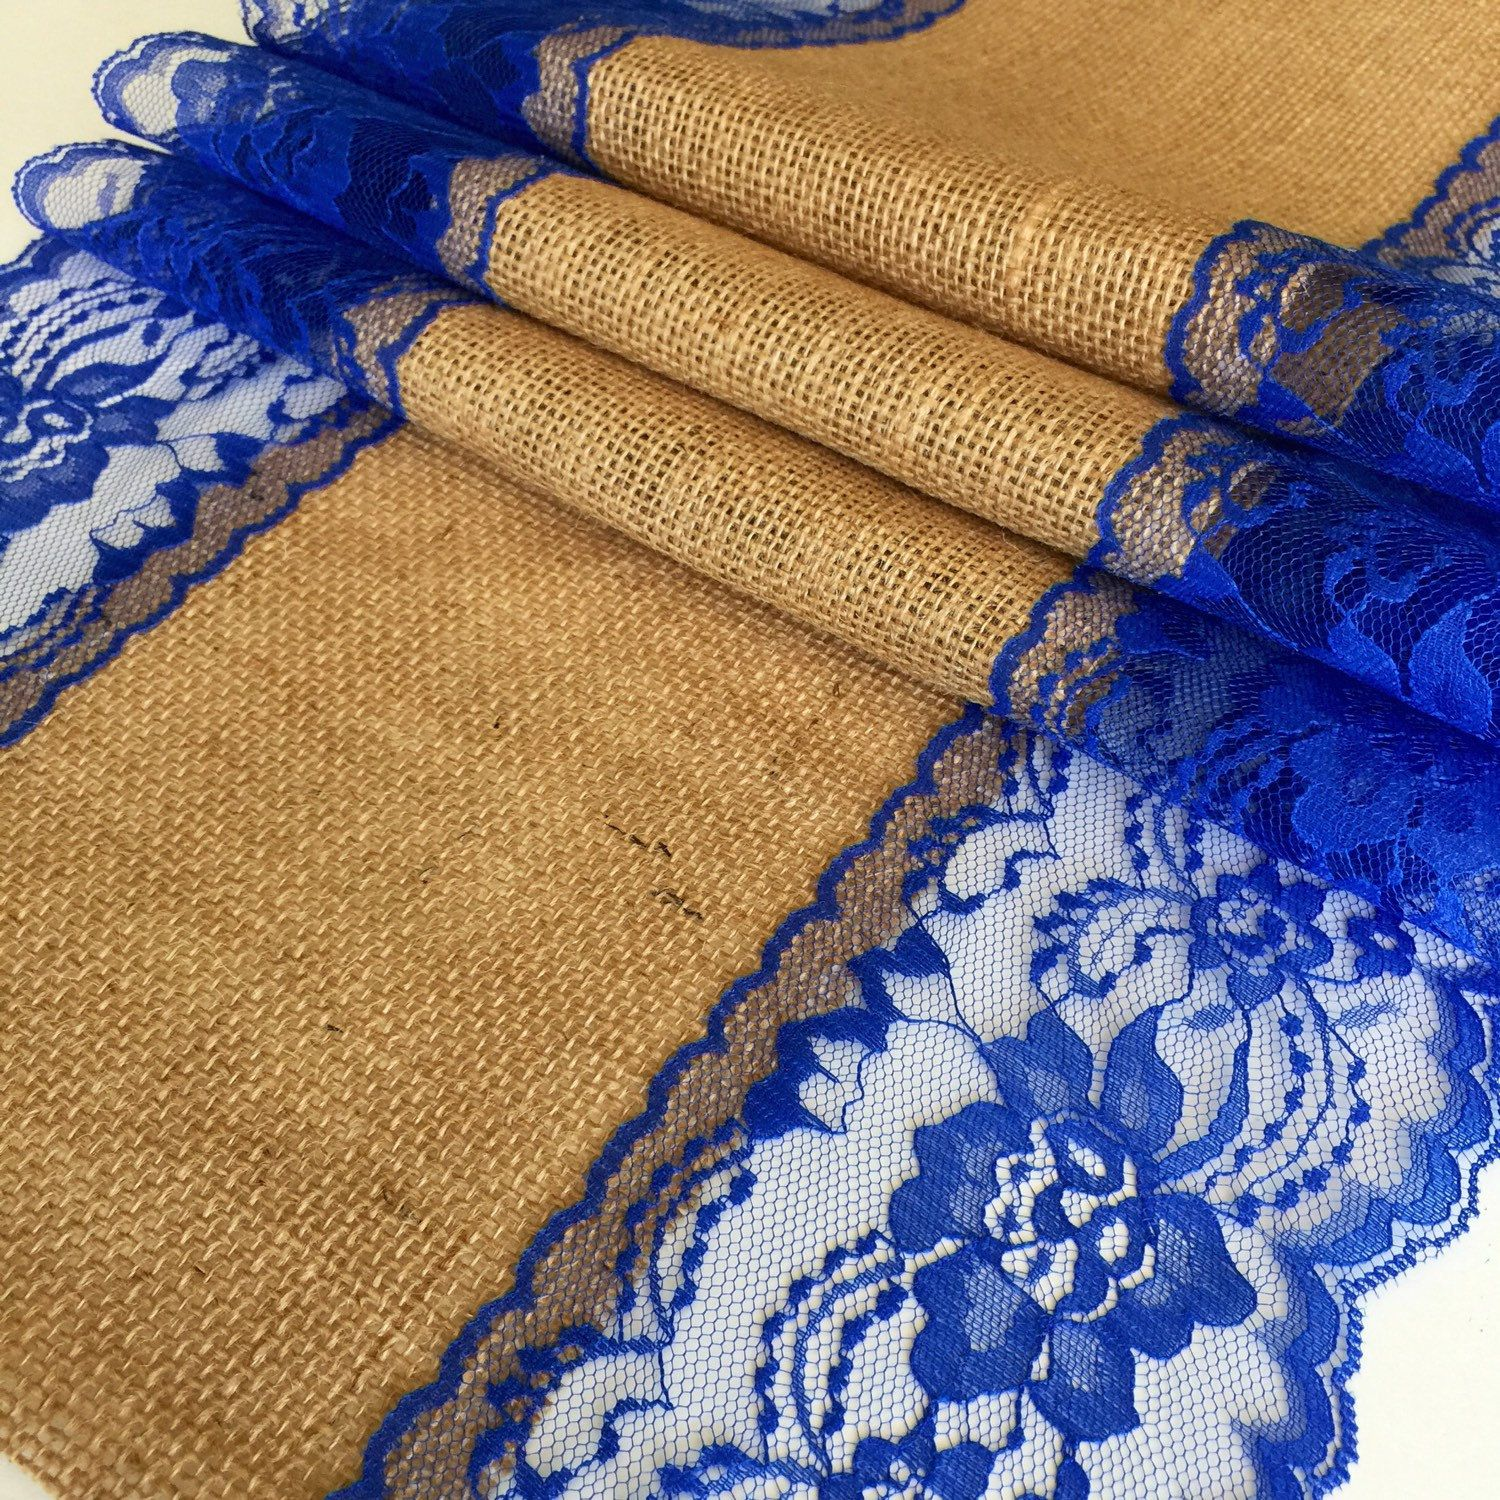 Wedding decorations with royal blue  Burlap Lace Table Runner u ROYAL BLUE LACEftft xin Wide